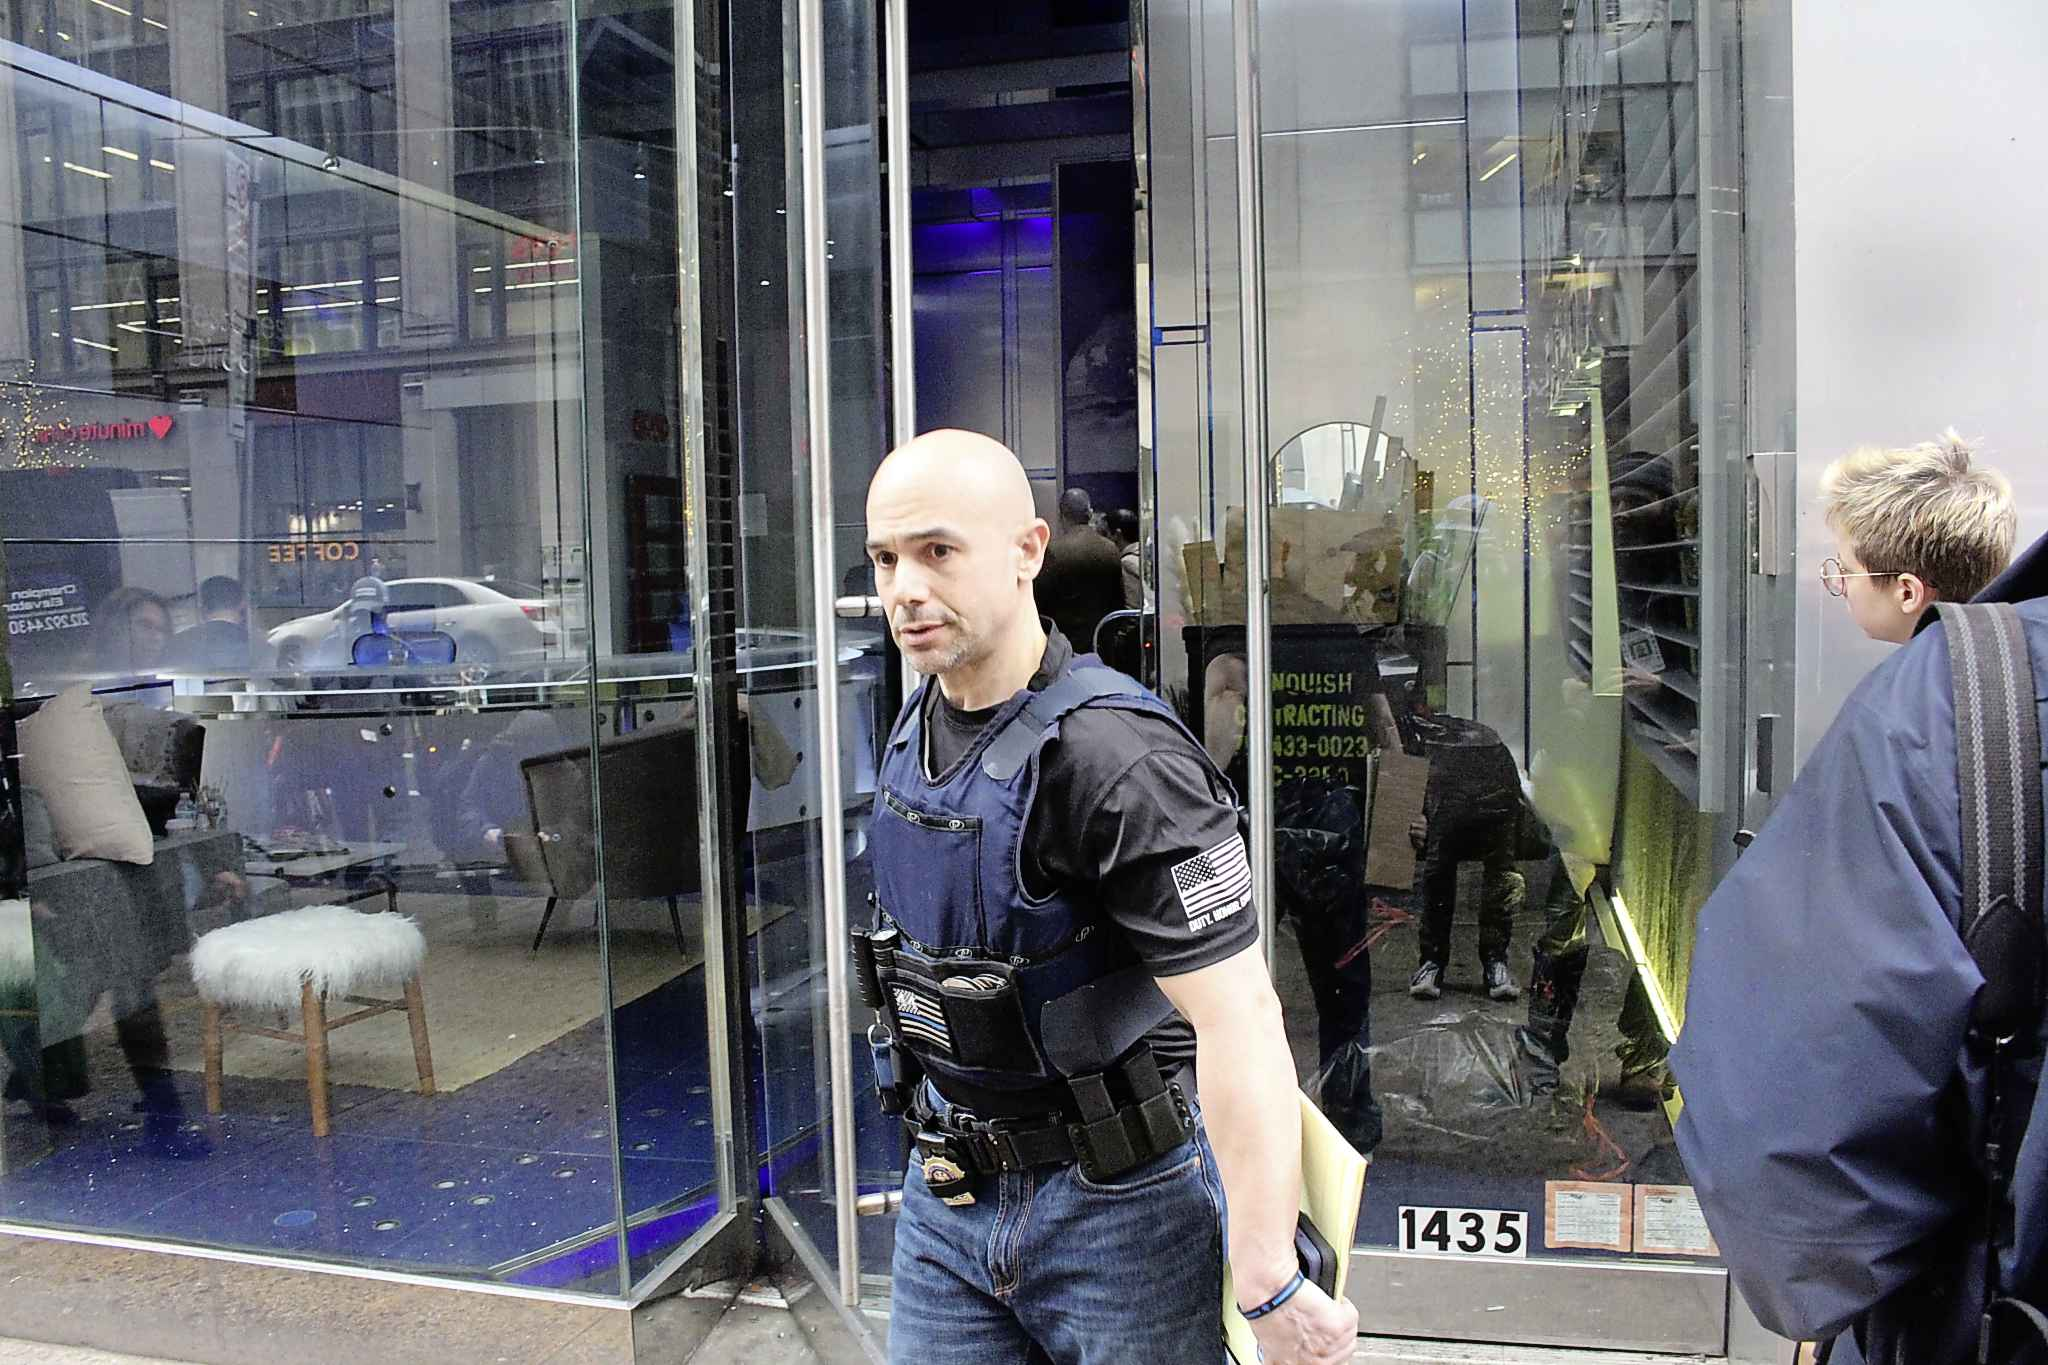 A law enforcement officer exits Nygard's headquarters in Times Square in New York. (Ryan Thorpe / Winnipeg Free Press)